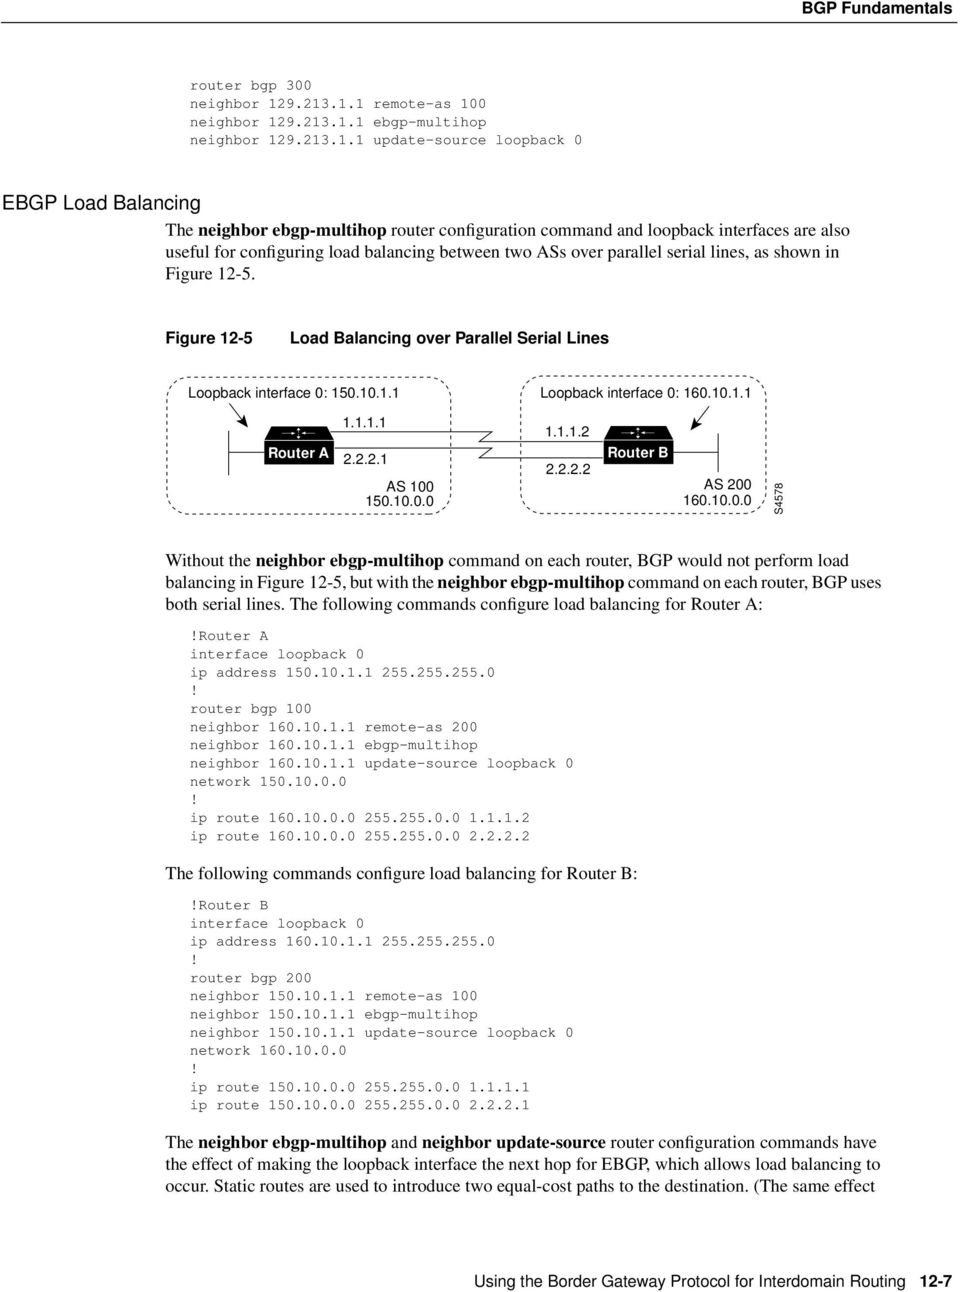 interfaces are also useful for configuring load balancing between two ASs over parallel serial lines, as shown in Figure 12-5.